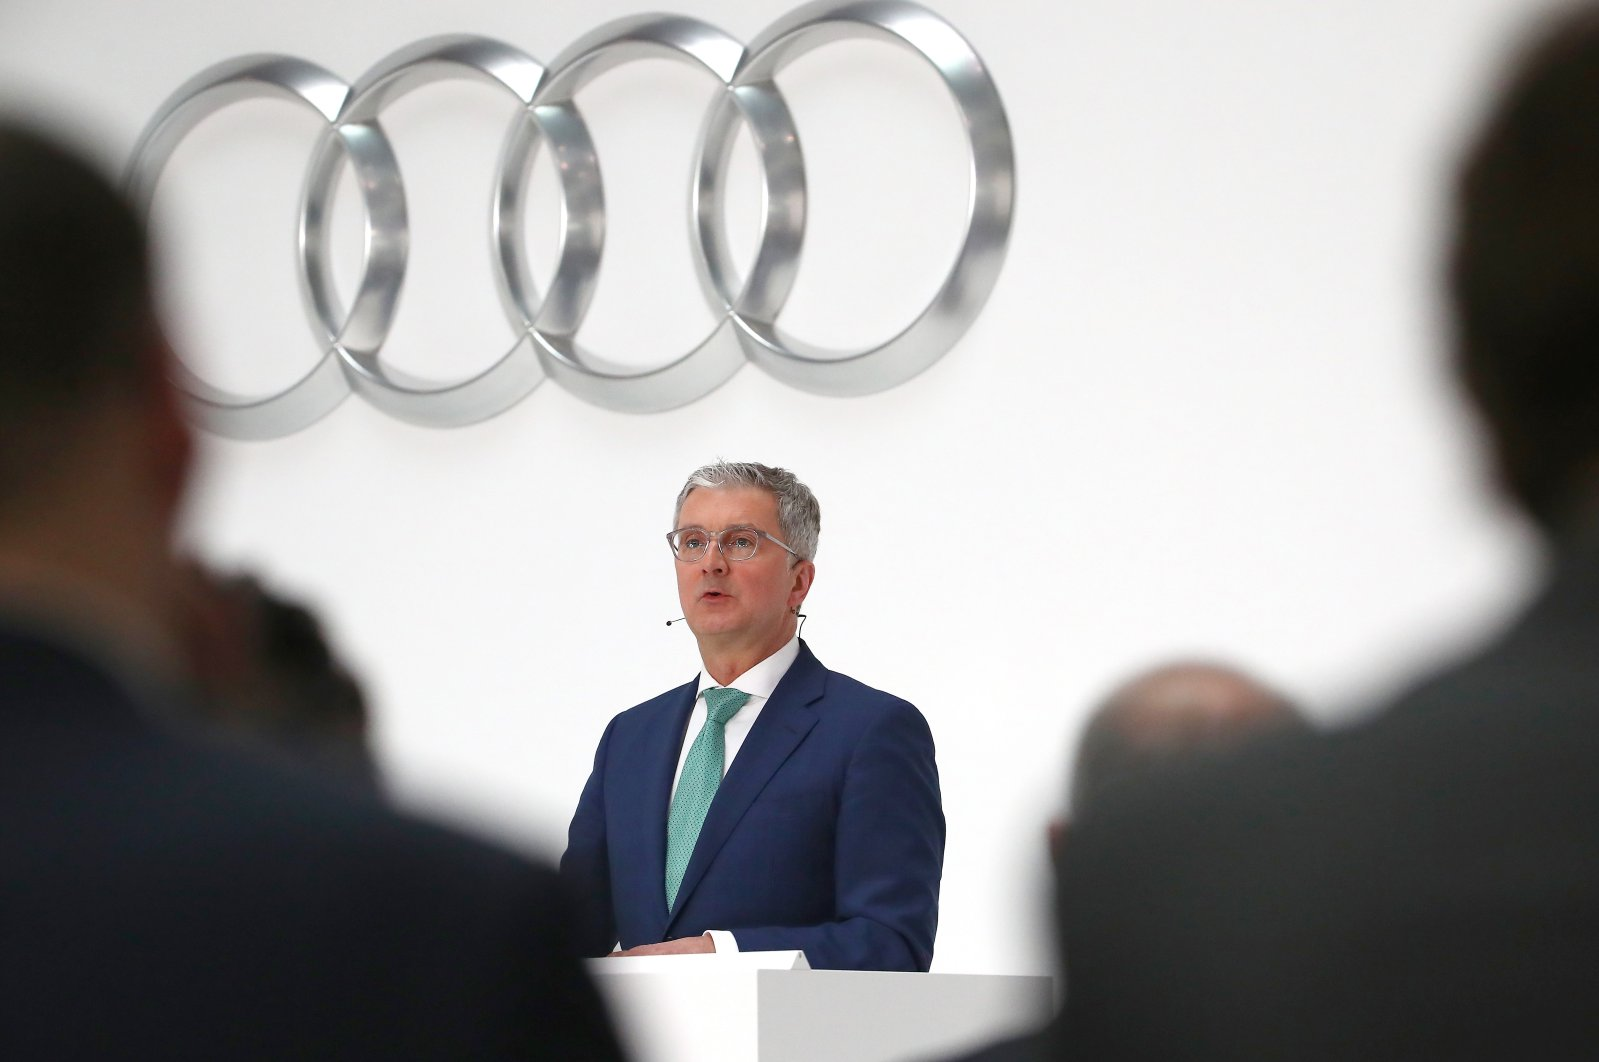 Audi CEO Rupert Stadler speaks during the company's annual news conference in Ingolstadt, Germany on March 15, 2018. (Reuters Photo)